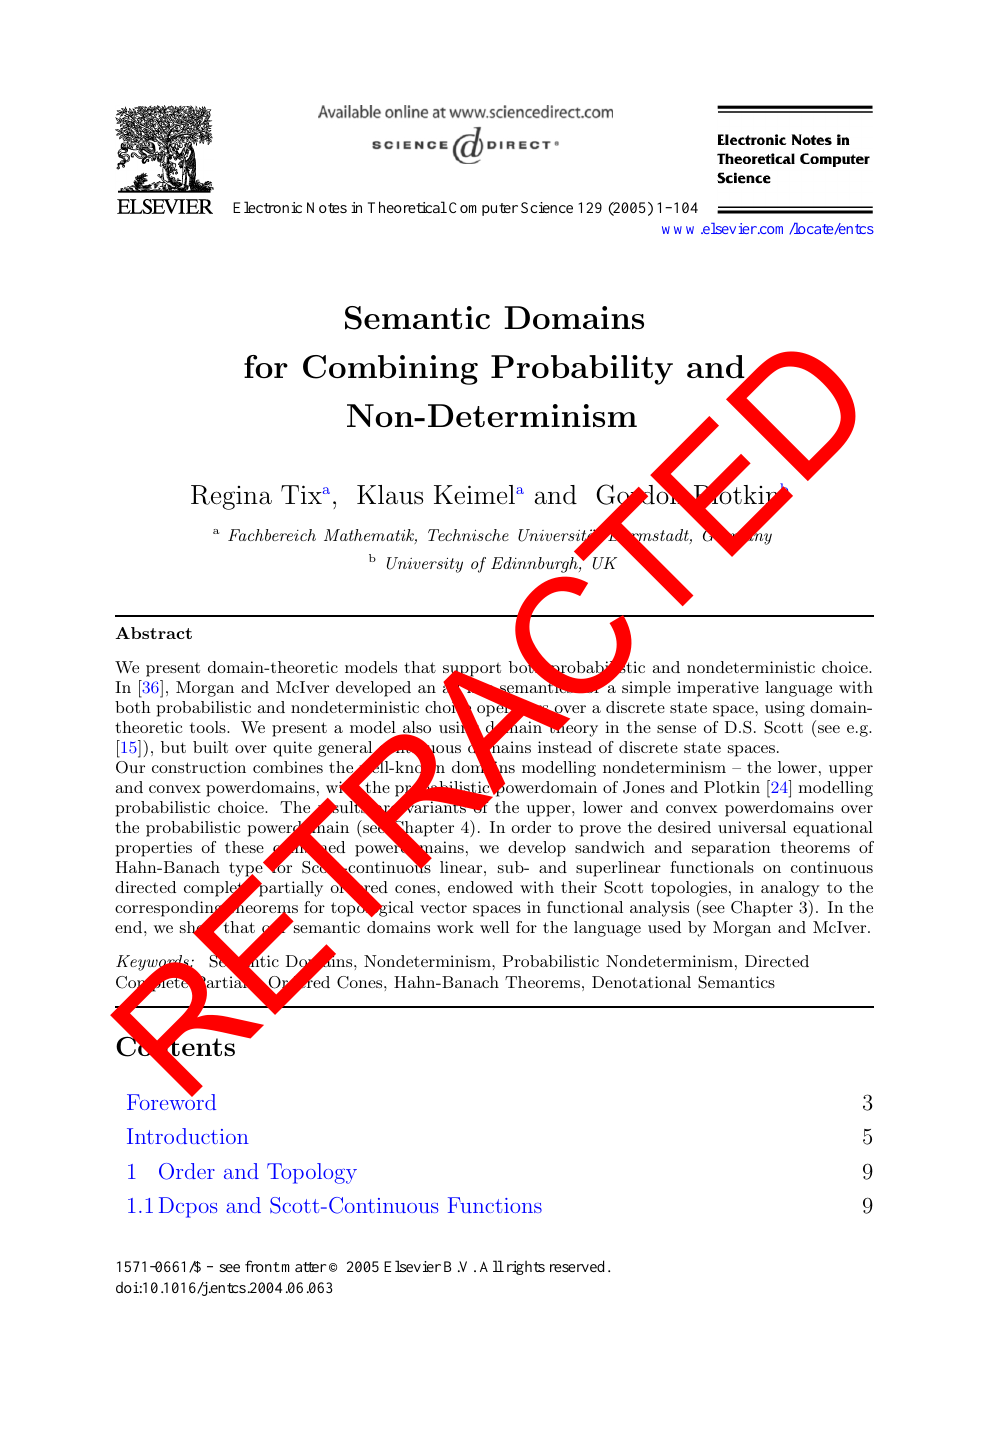 RETRACTED: Semantic Domains for Combining Probability and